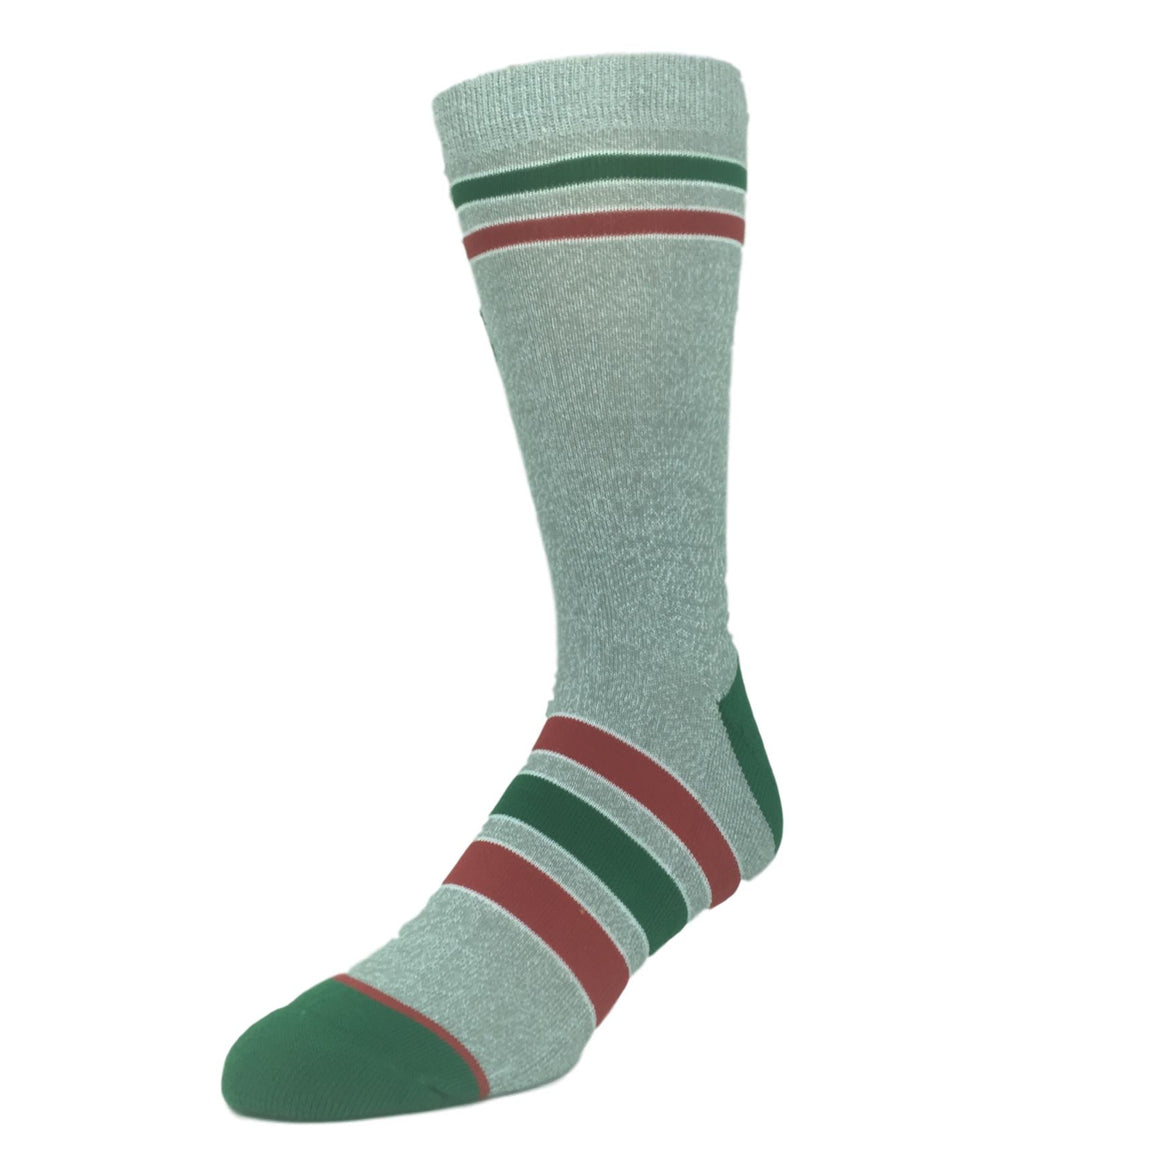 7UP Logo Socks by Odd Sox - The Sock Spot